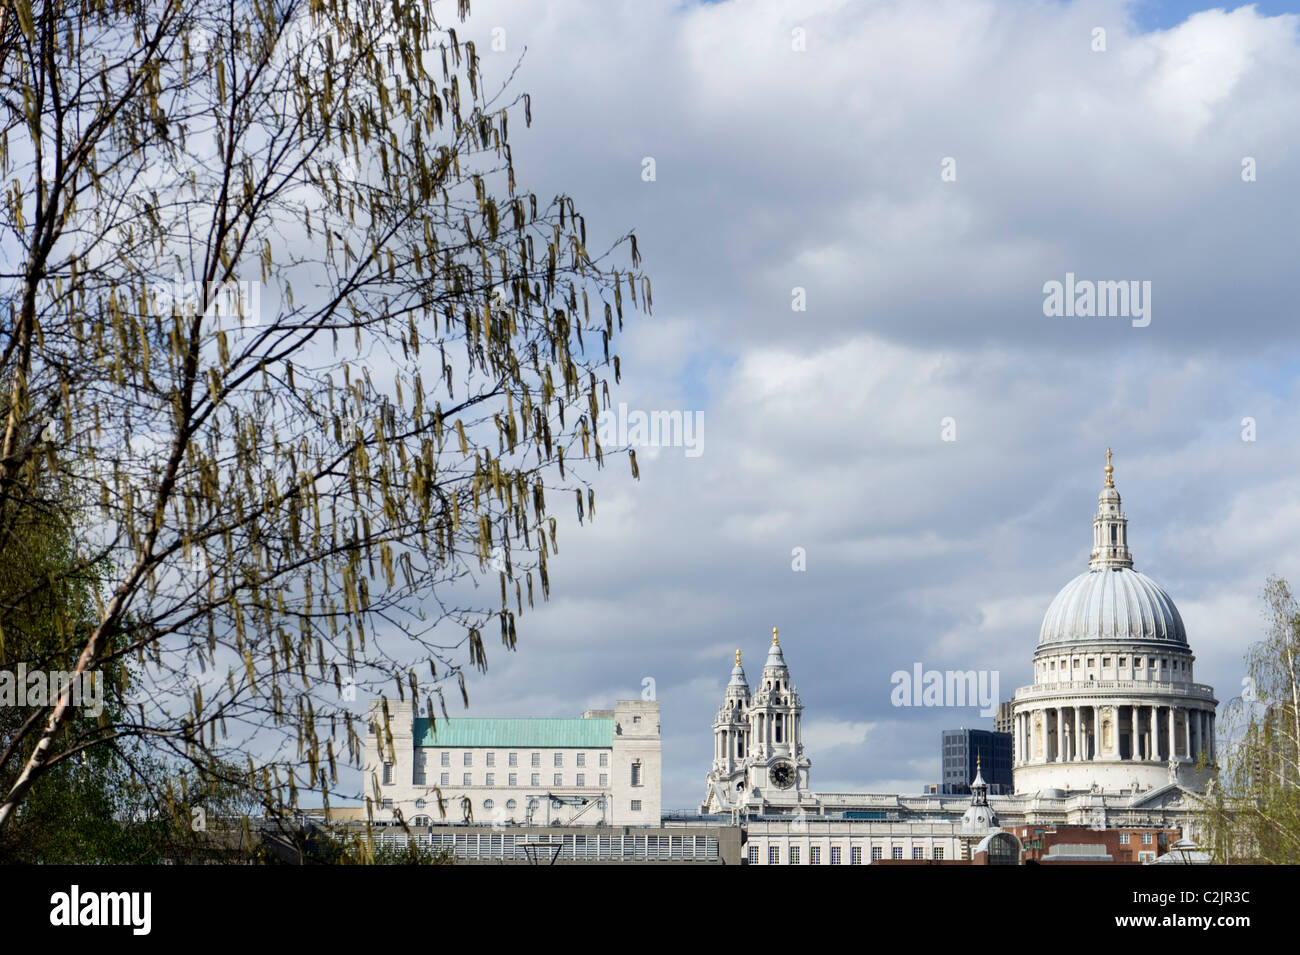 St. Paul's Cathedral in London, England, UK Stock Photo